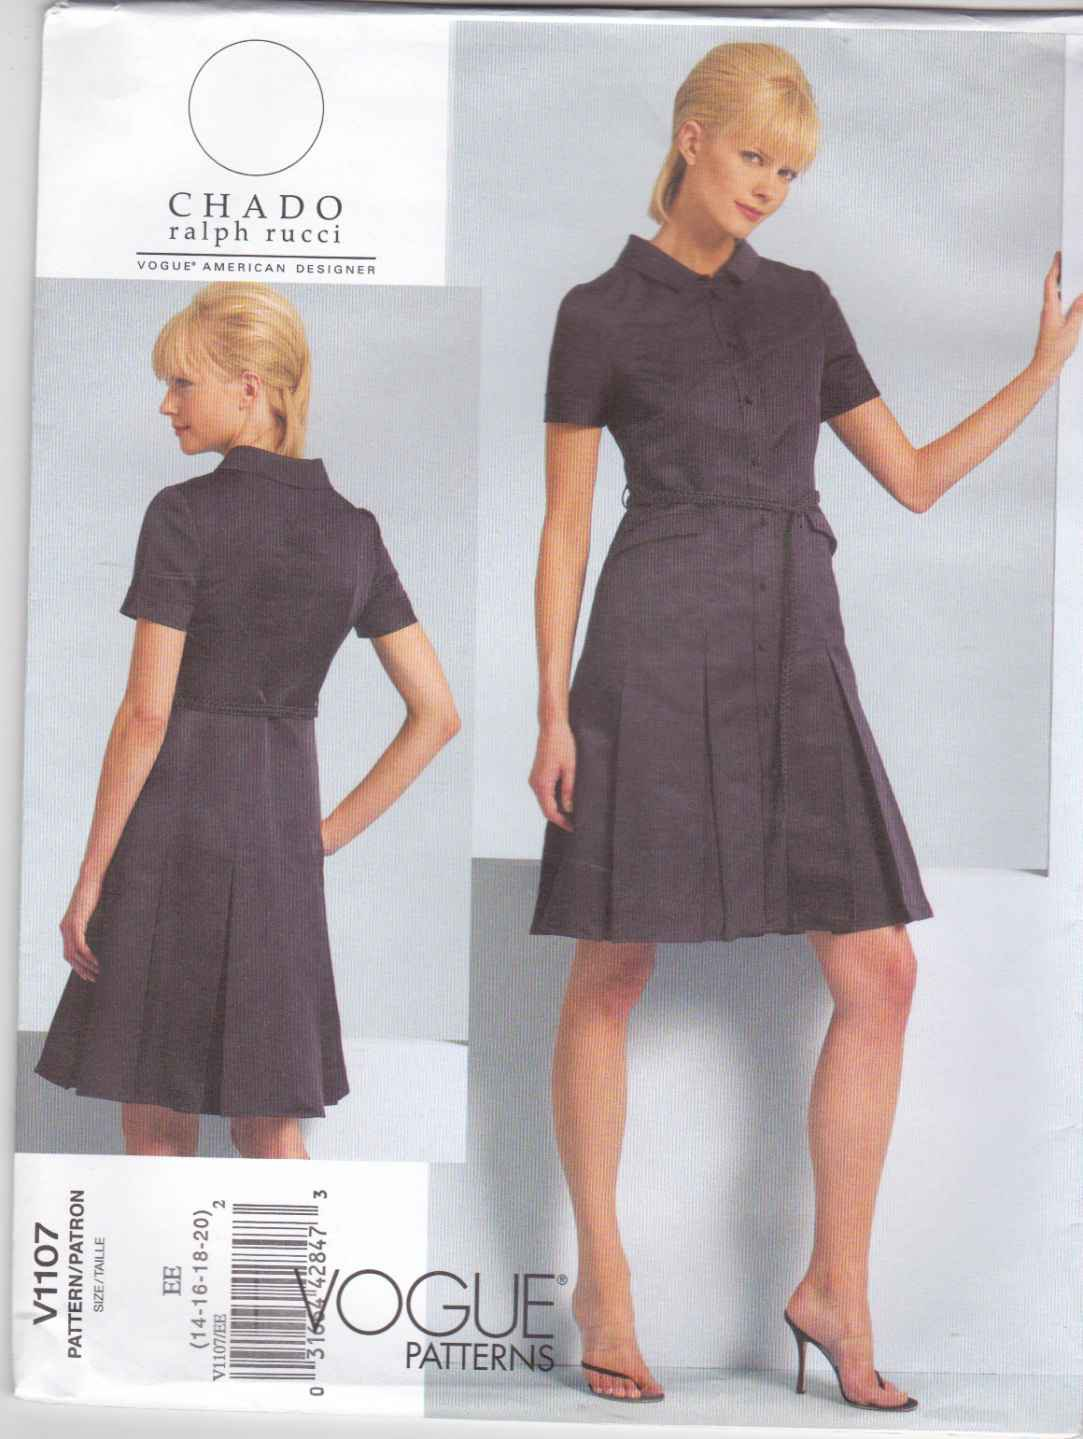 Vogue Sewing Pattern 1107 V1107 Misses Sizes 6-12 CHADO Ralph Rucci Dress Belt Seam Details